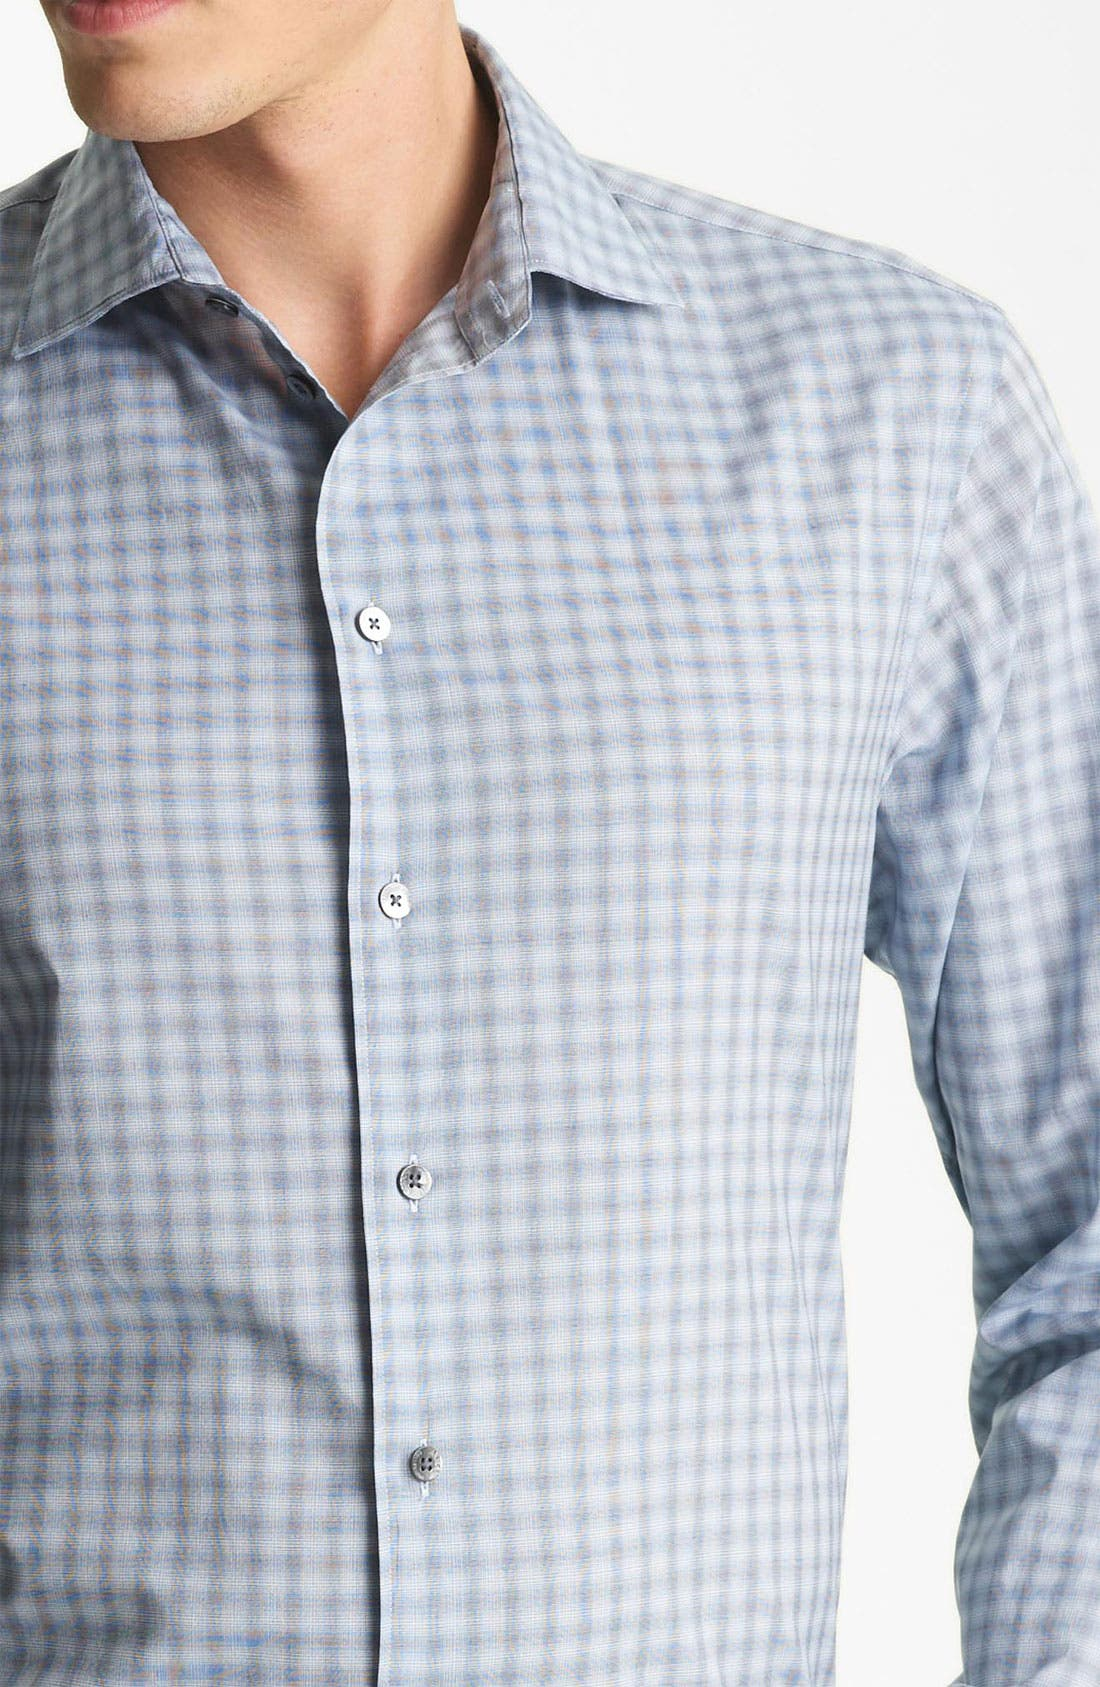 Alternate Image 3  - Armani Collezioni Plaid Woven Shirt